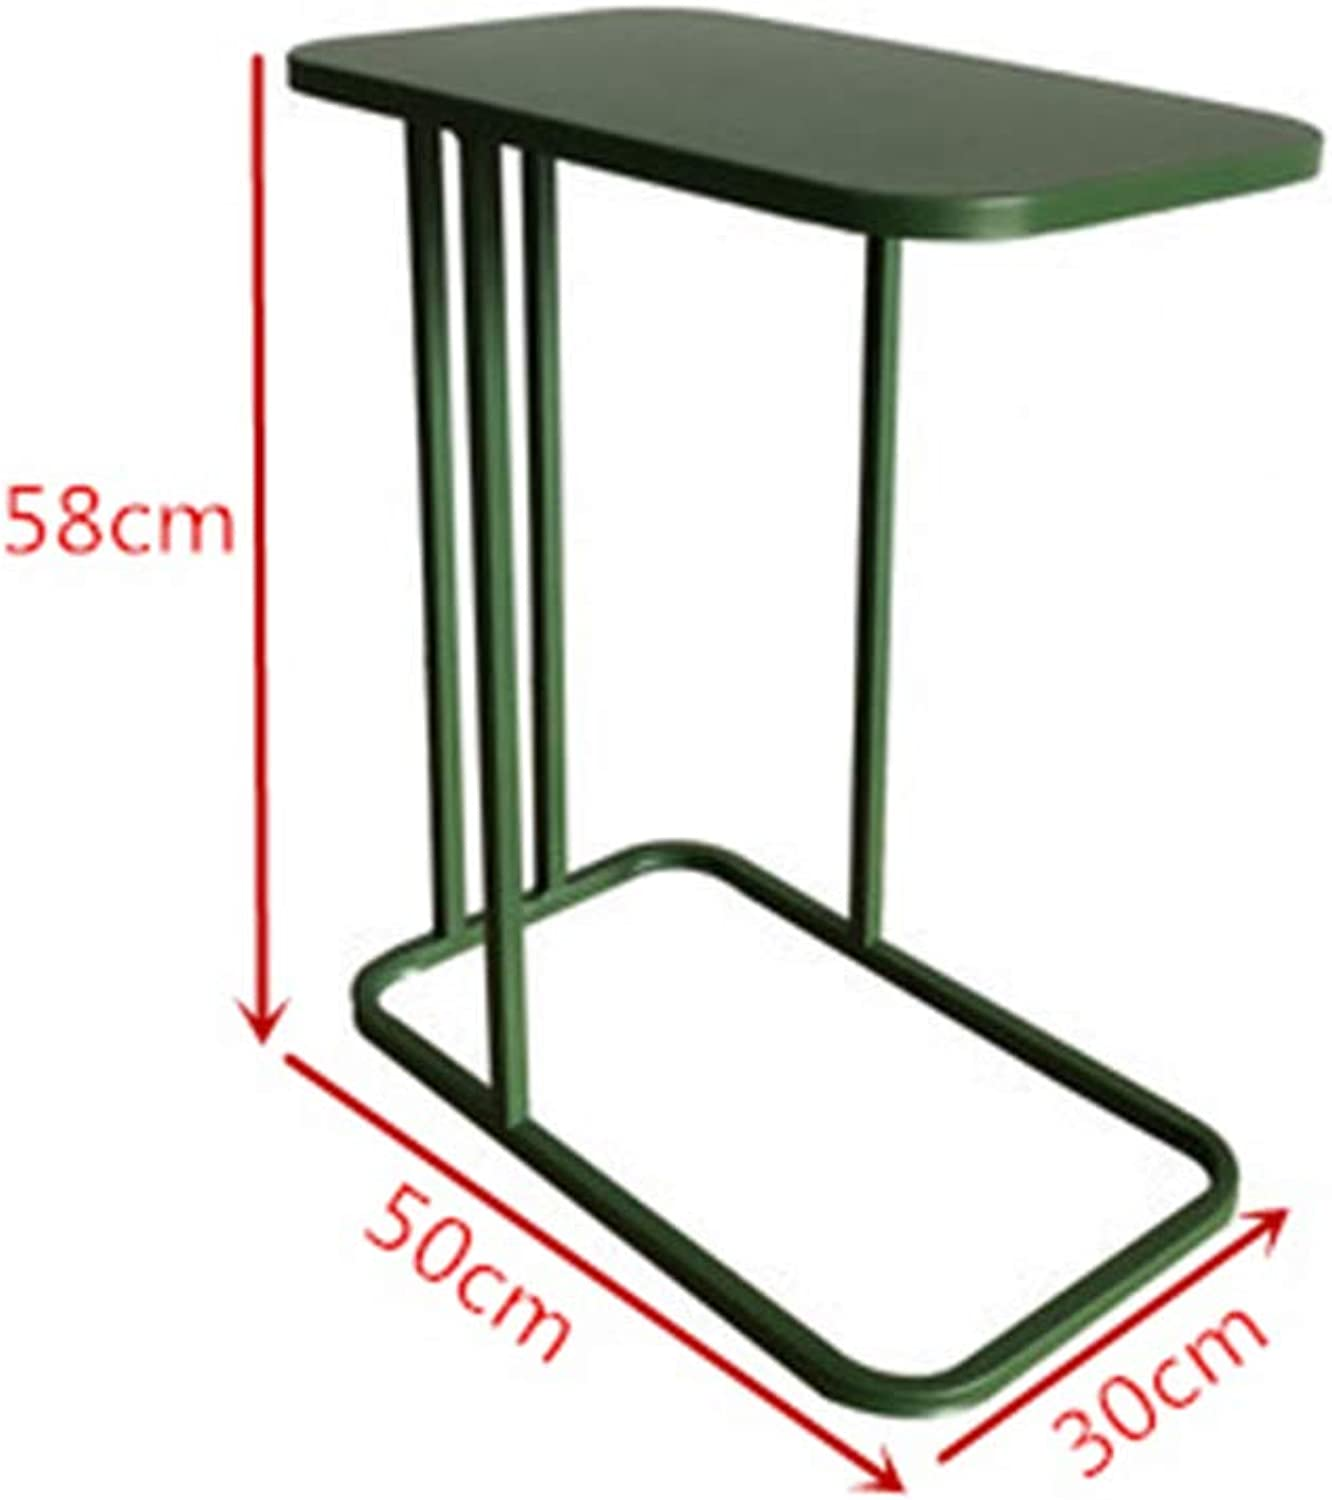 YNN Simple Wrought Iron Small Coffee Table Modern Marble Living Room Sofa Side Bedroom Bedside Table (color   Green)